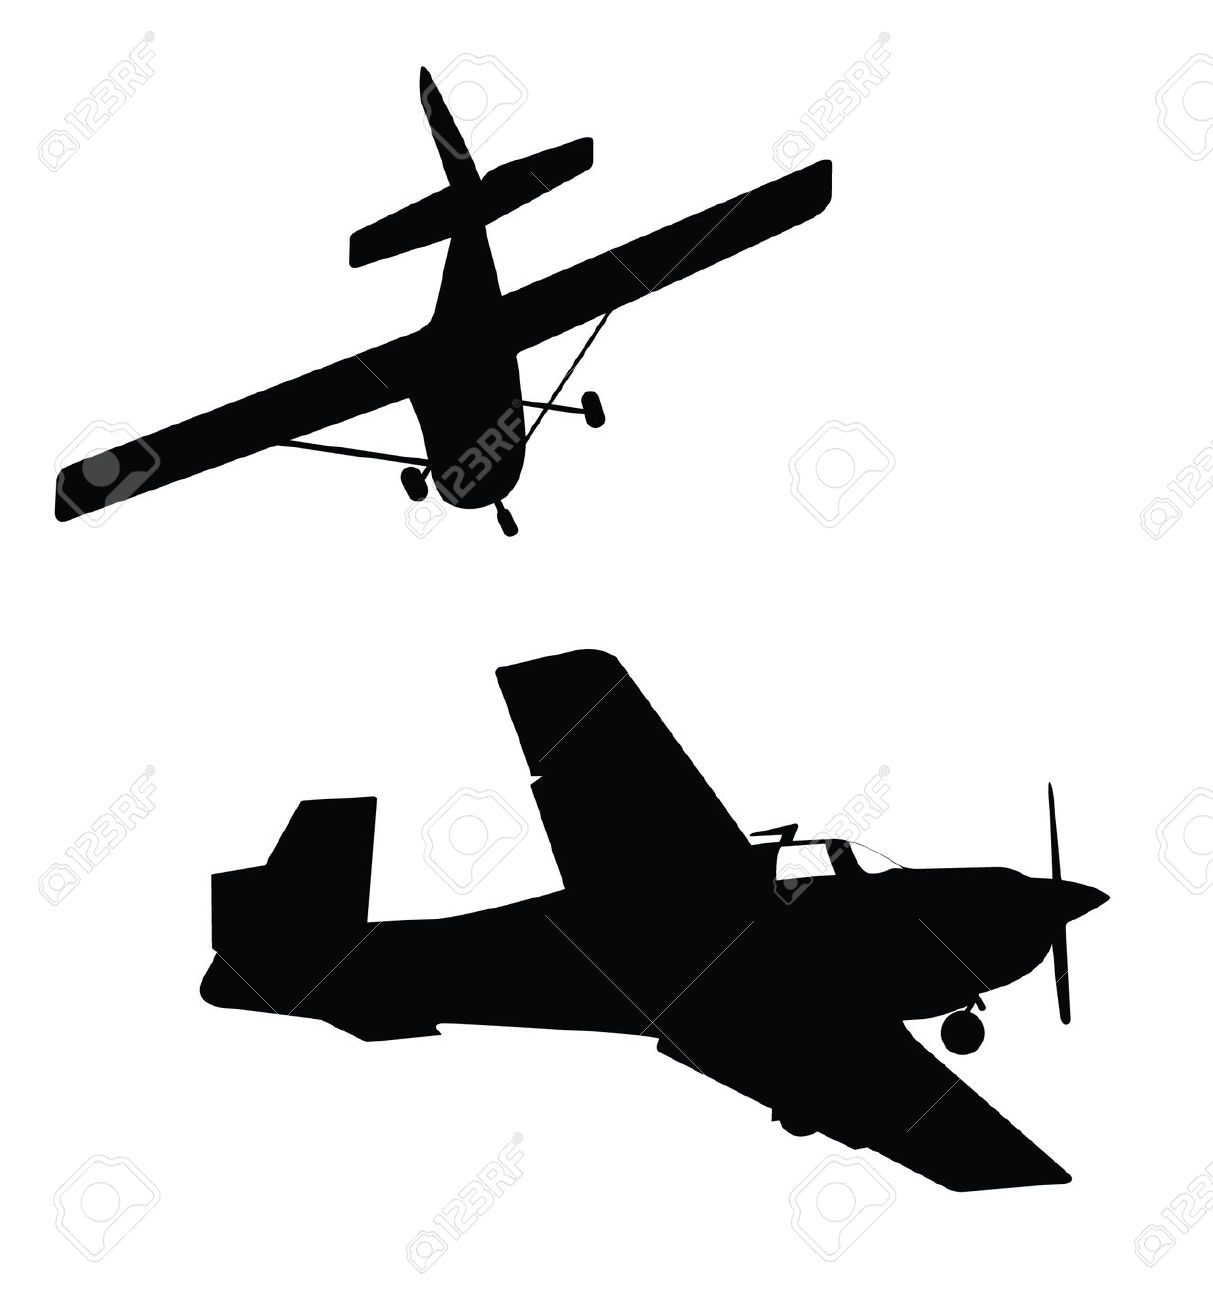 airplane silhouette vector at getdrawings com free for personal